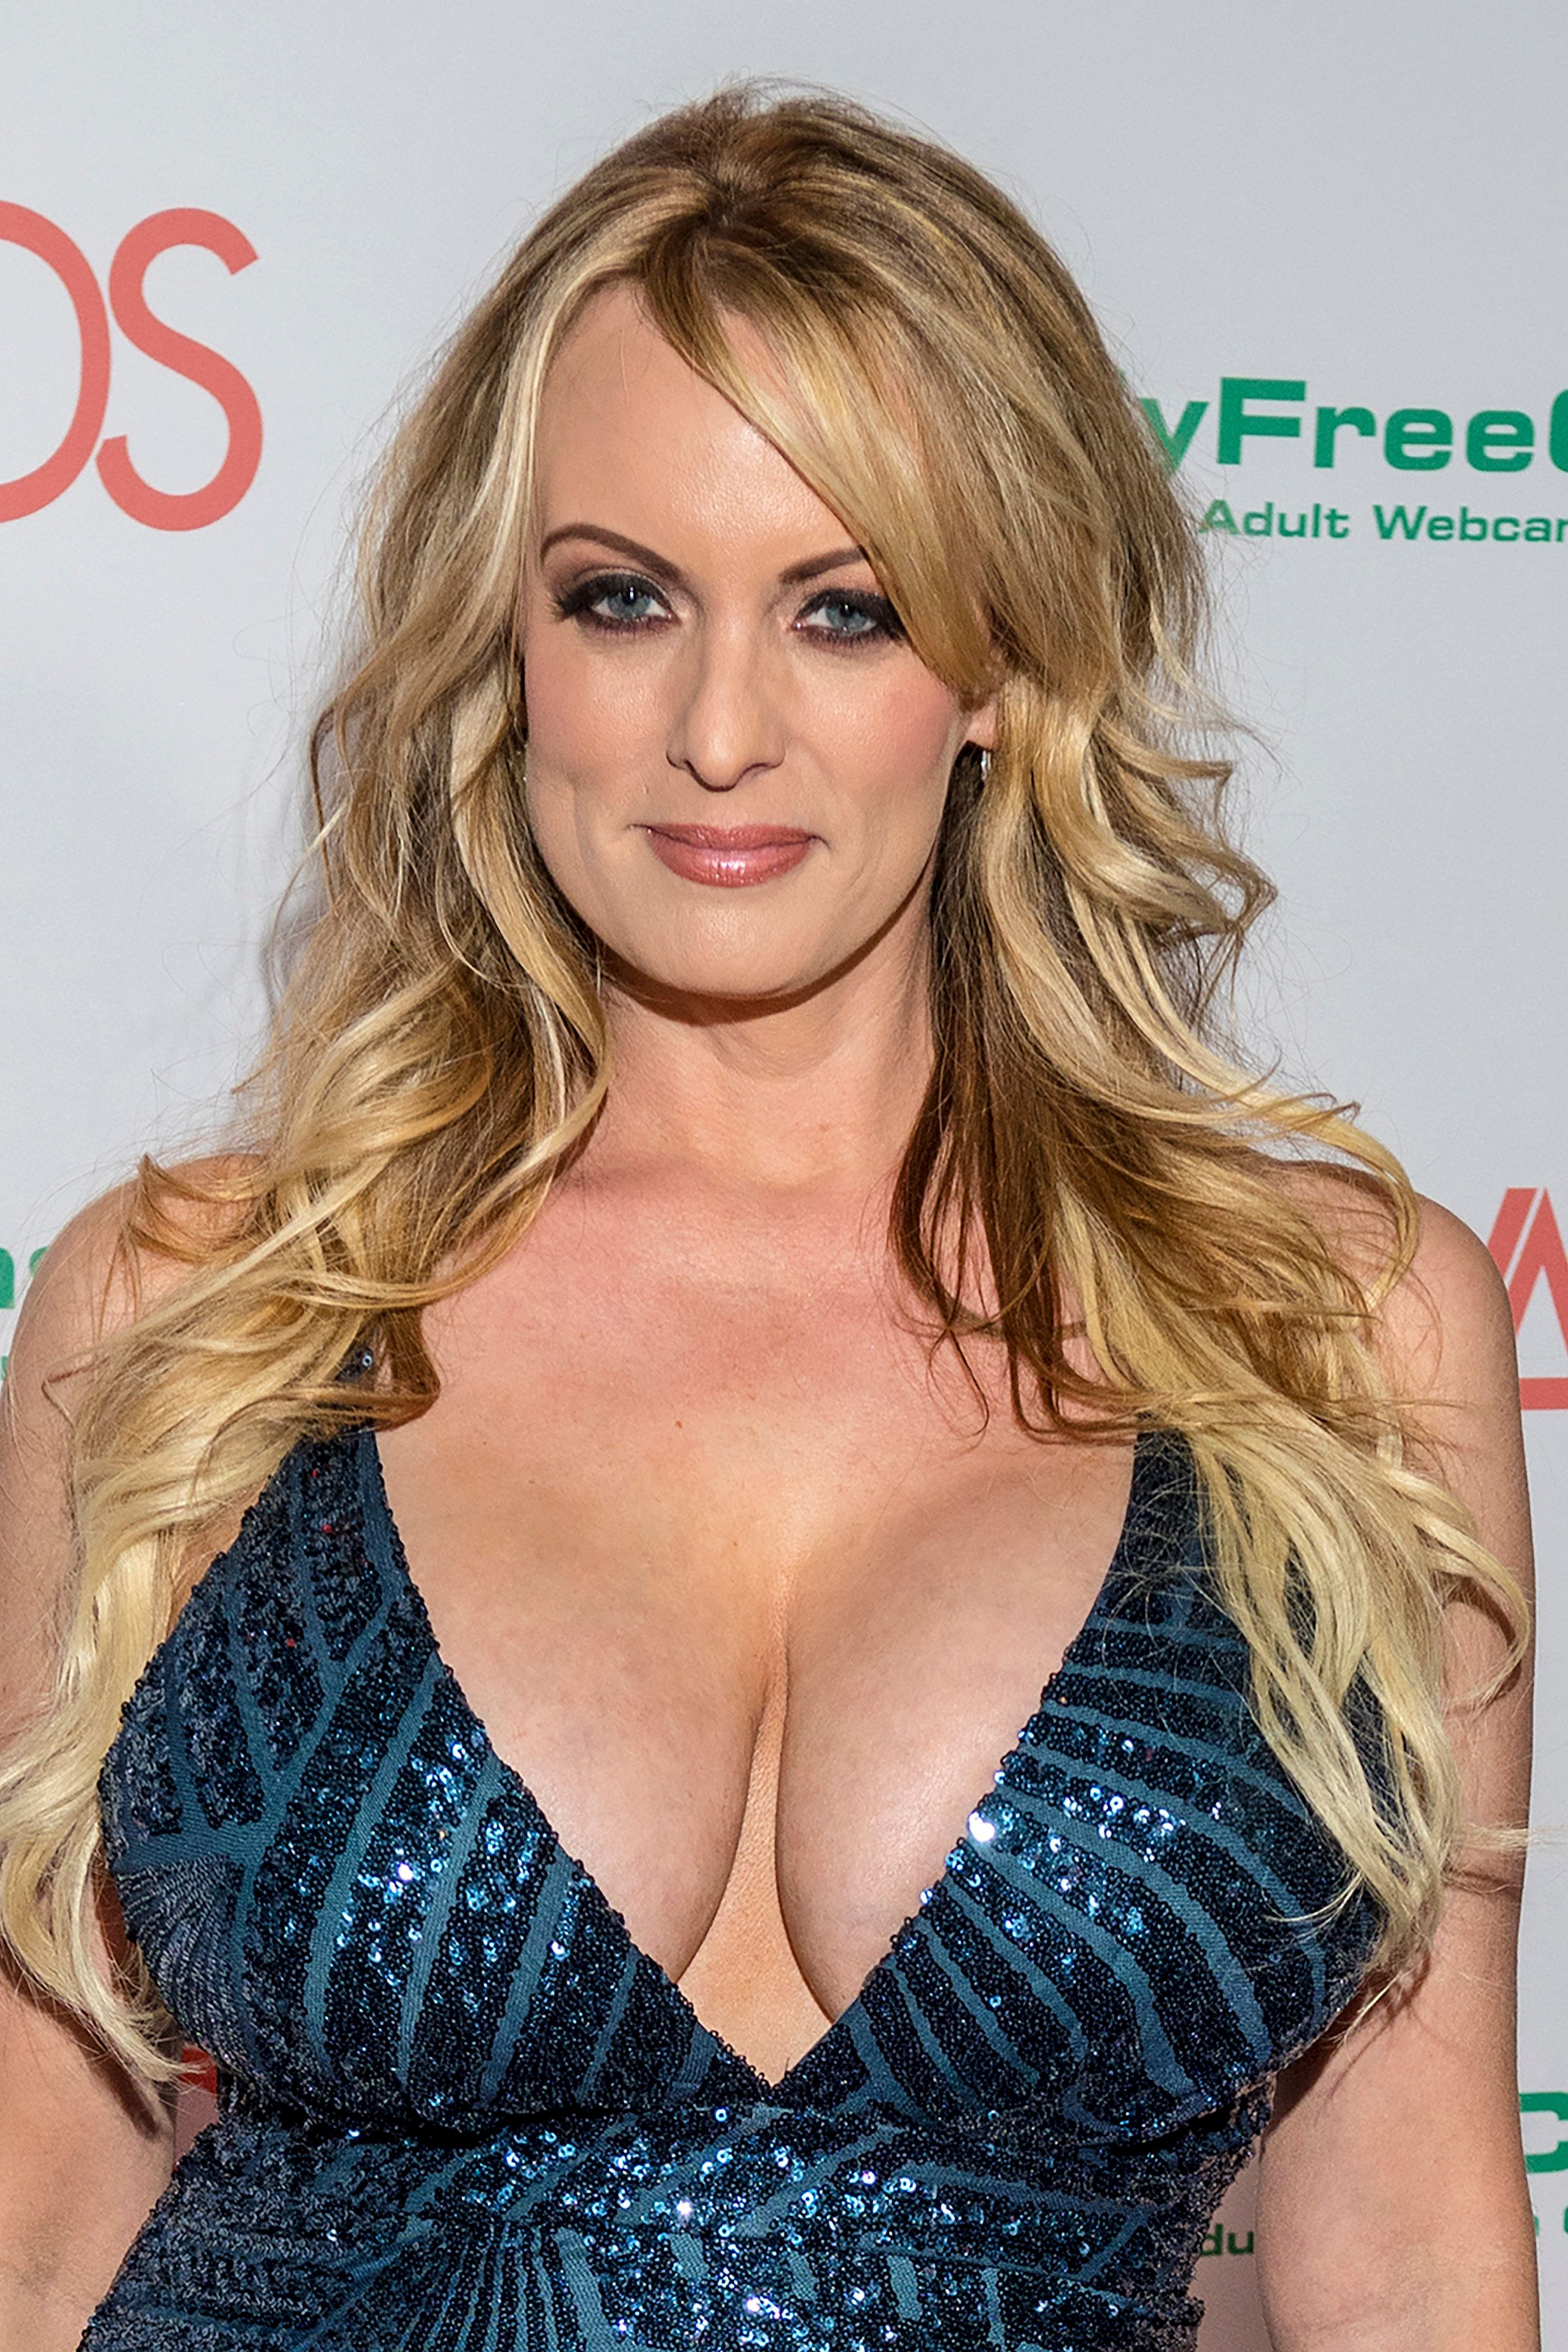 LAS VEGAS, NV - JANUARY 27: Stormy Daniels at the AVN Awards at the Hard Rock Hotel & Casino in Las Vegas, Nevada on January 27, 2018. Credit: Damairs Carter/MediaPunch /IPX